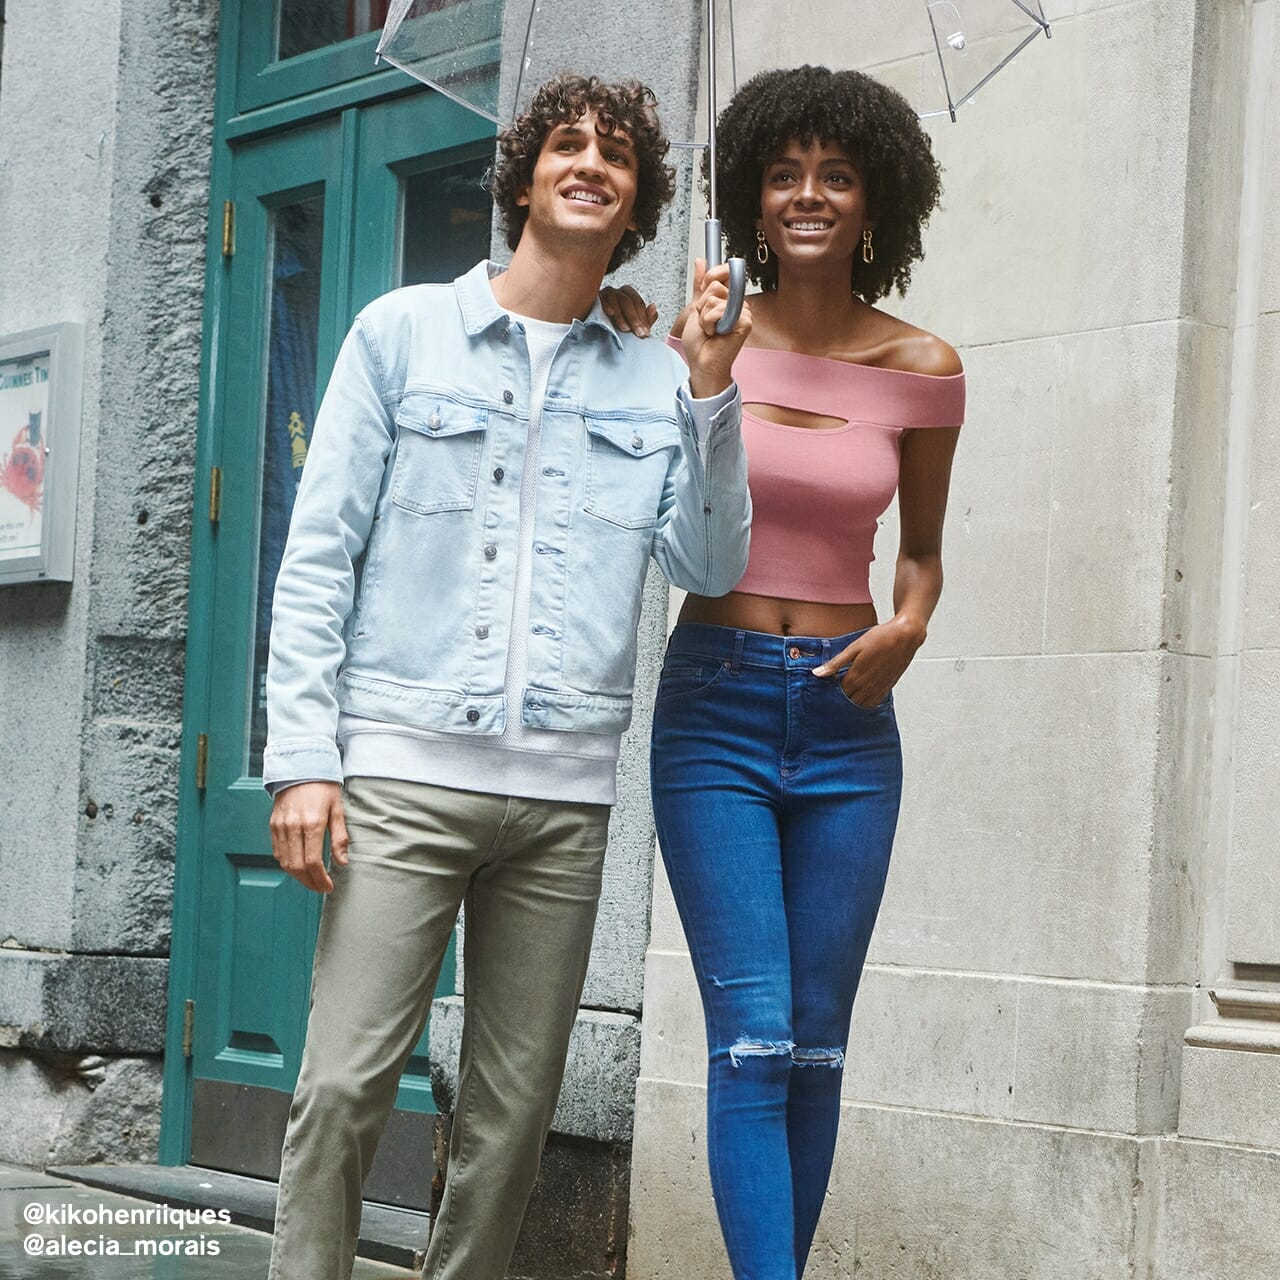 A man and a woman wearing Express clothing and walking down a street.